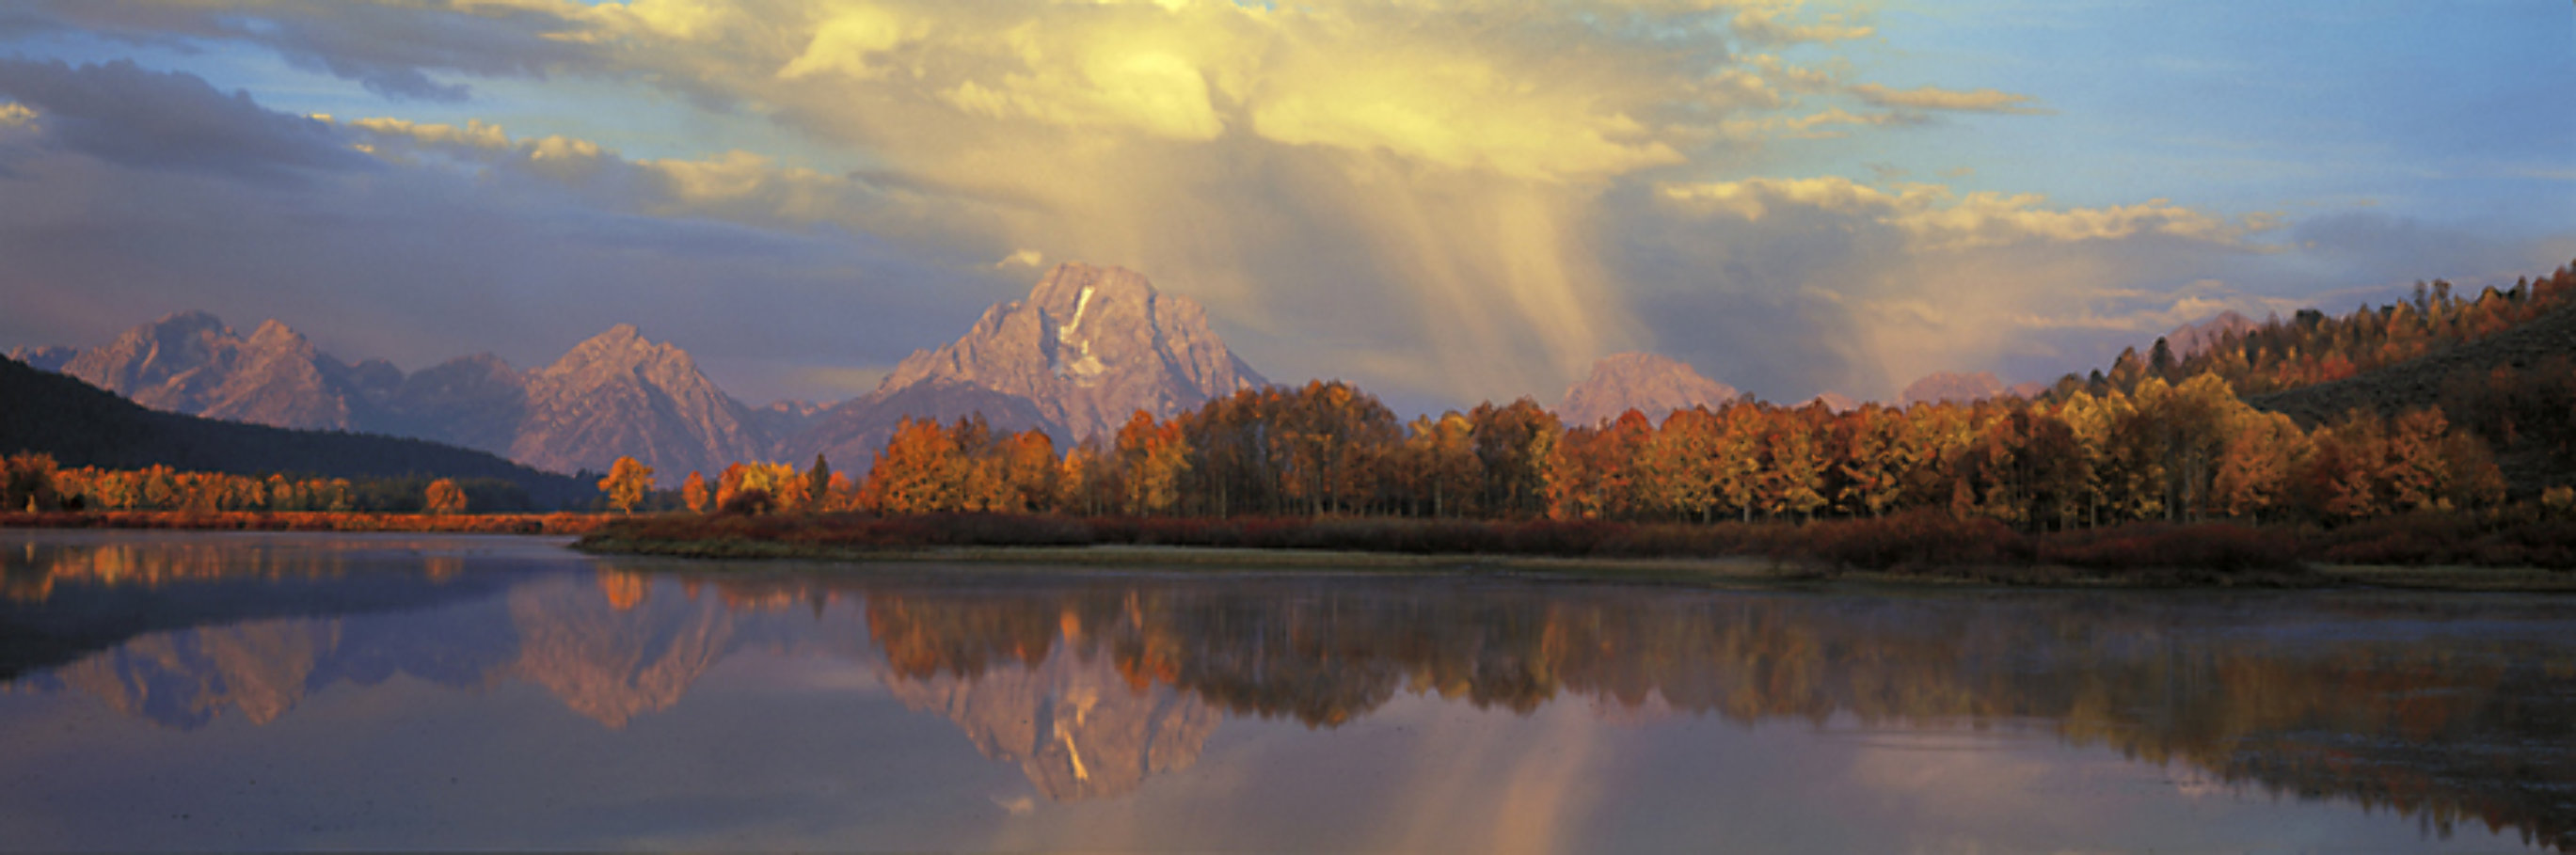 September Showers, Oxbow Bend  - Super Huge 110 in Panorama by Thomas Mangelsen